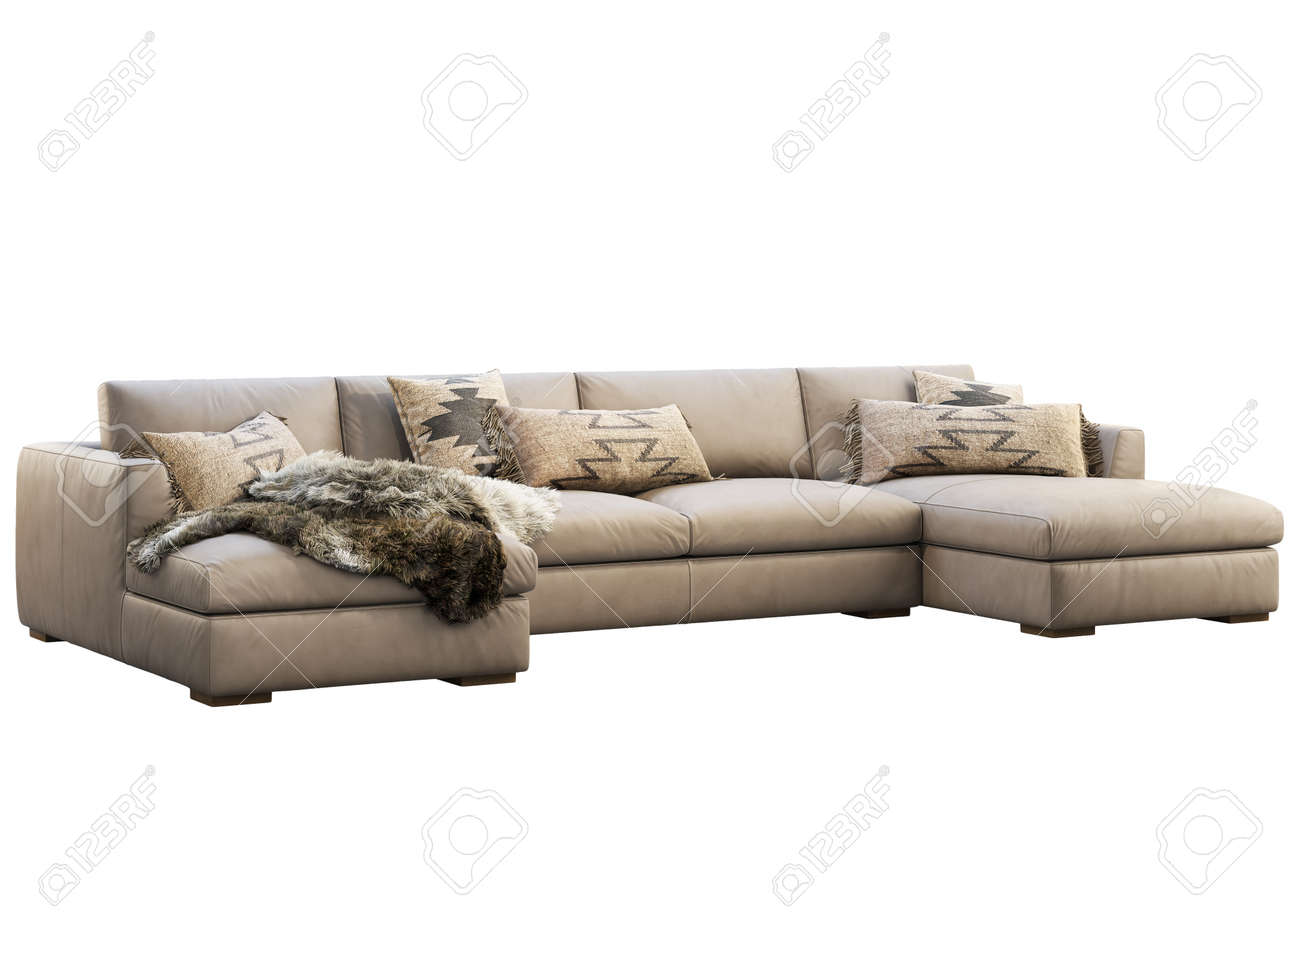 chalet modular leather sofa with chaise lounge leather upholstery